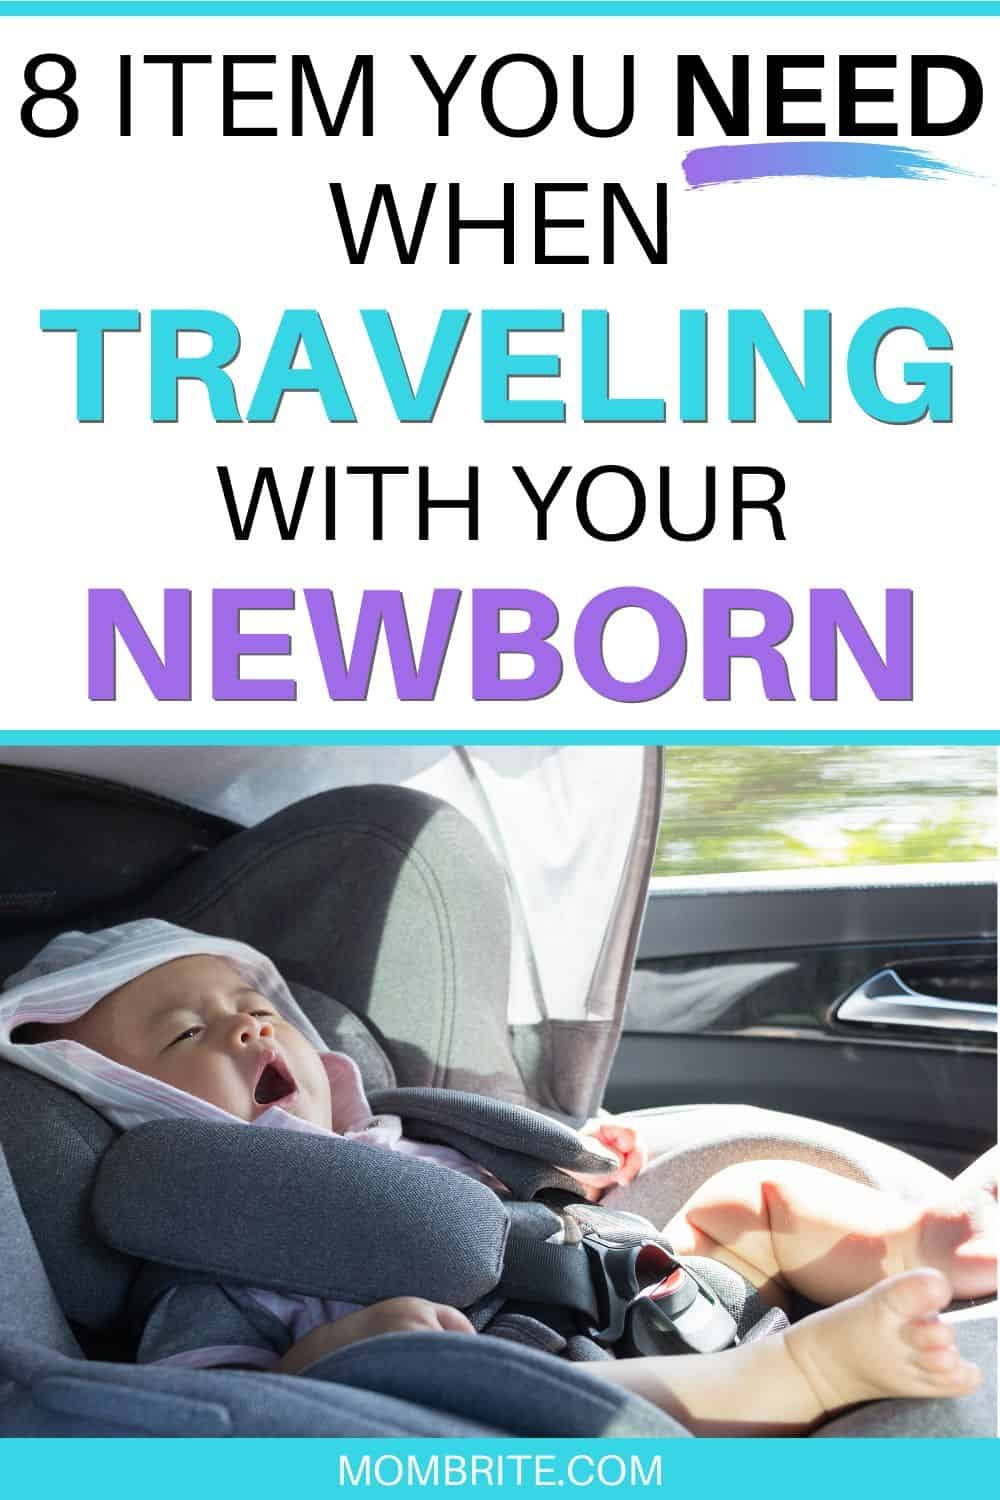 items-you-need-when-traveling-with-newborn